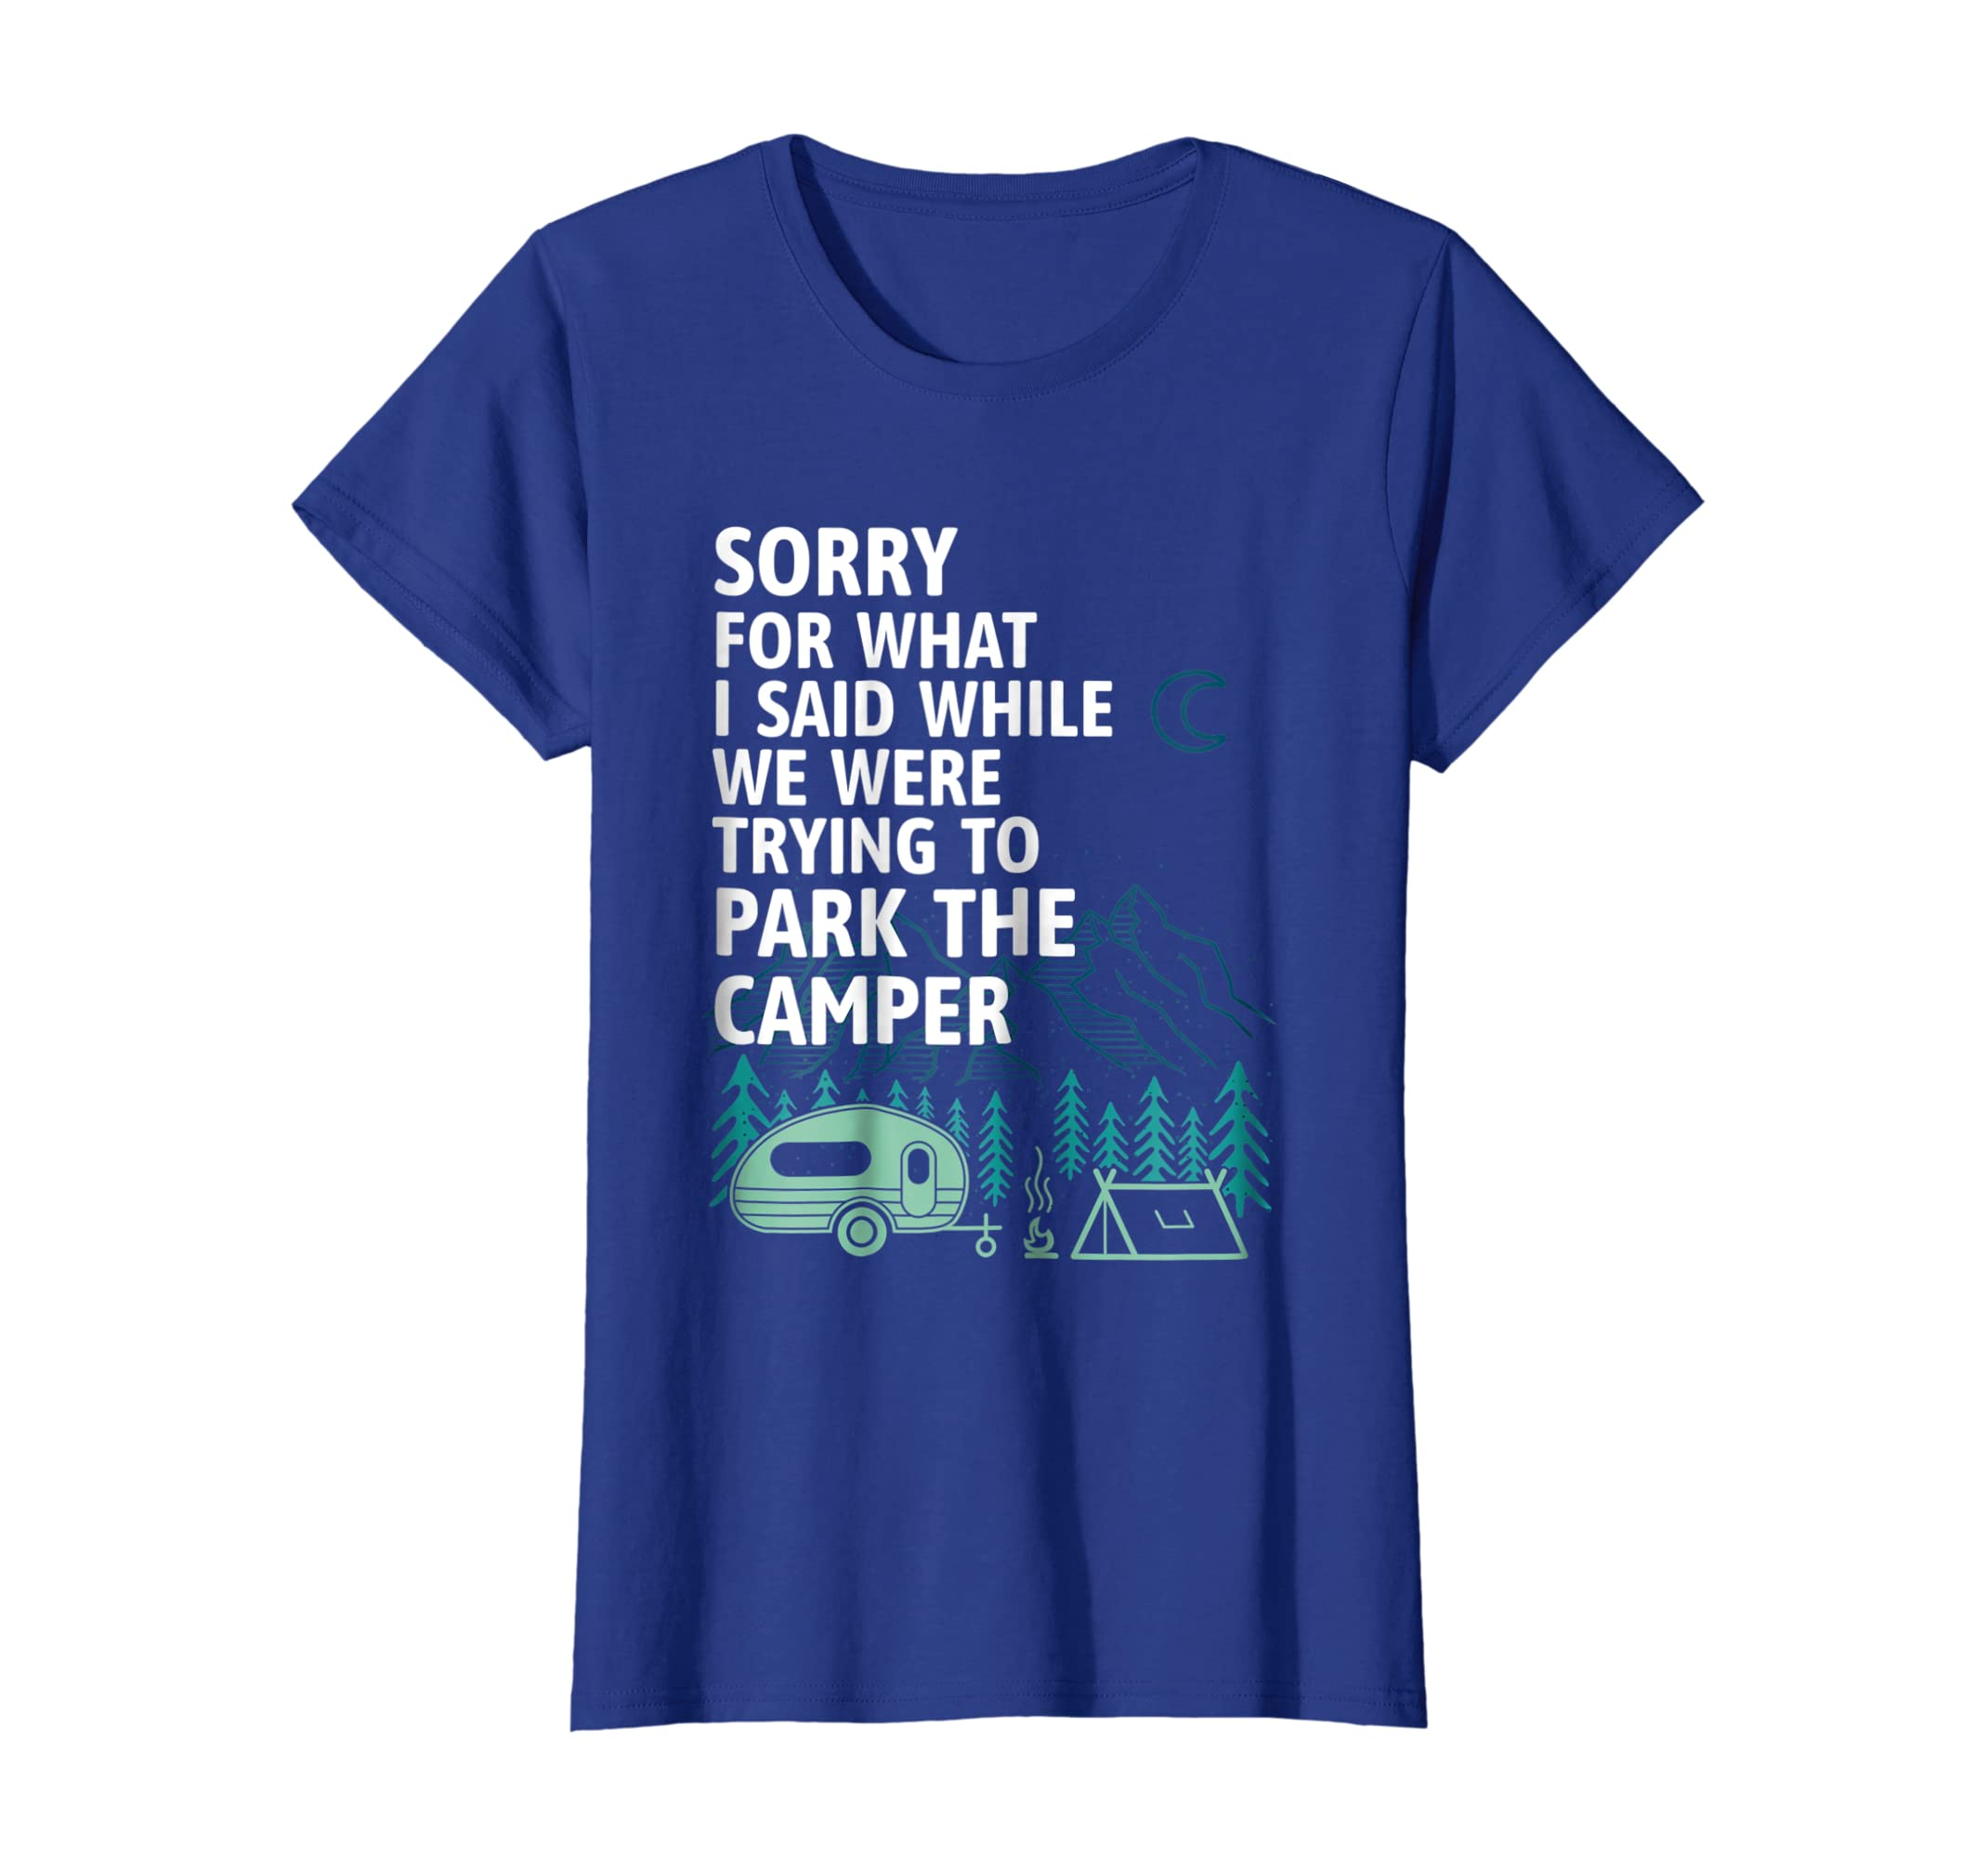 52fade88 Amazon.com: Sorry For What I Said, Park The Camper RV Camping T Shirt:  Clothing